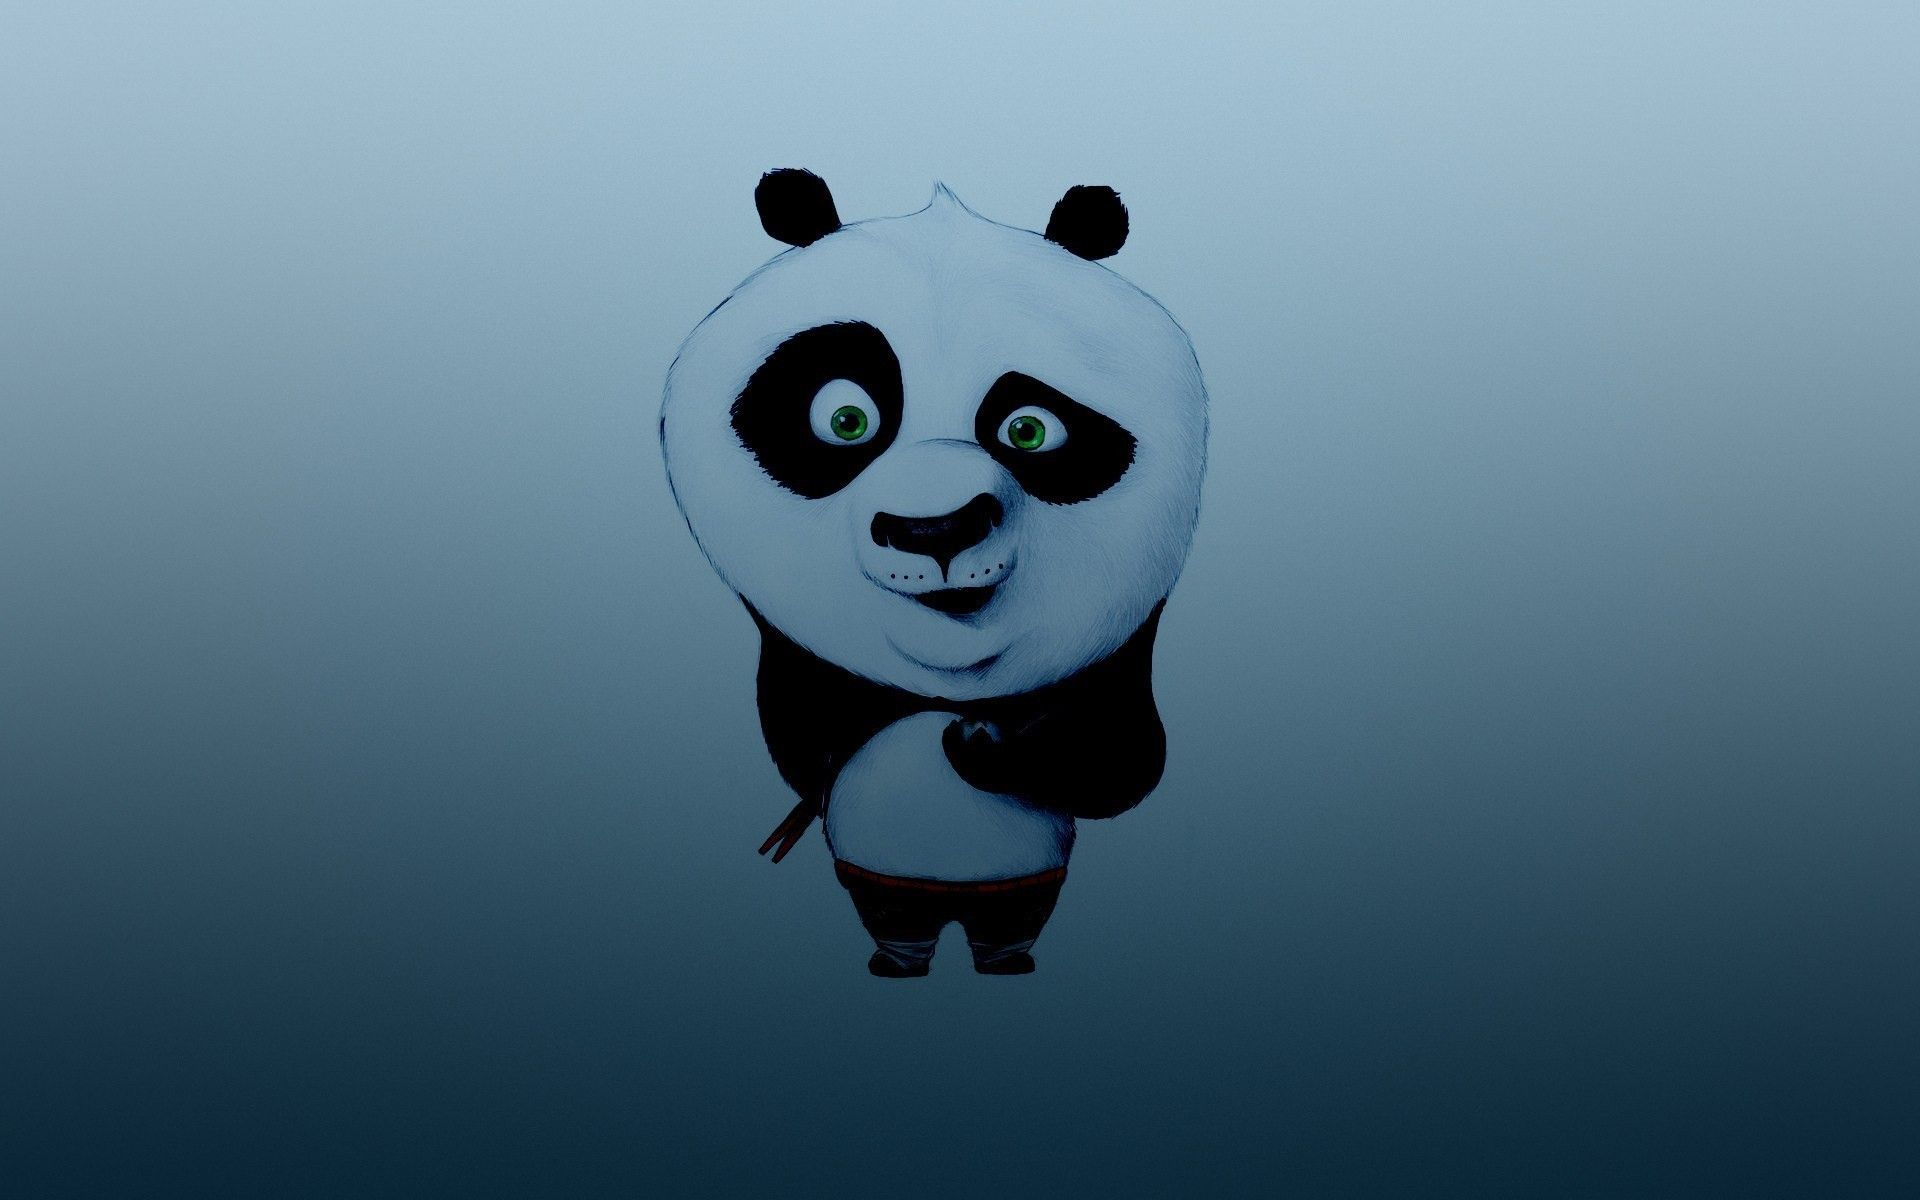 Kung Fu Panda Hd Wallpapers on WallpaperGet.com